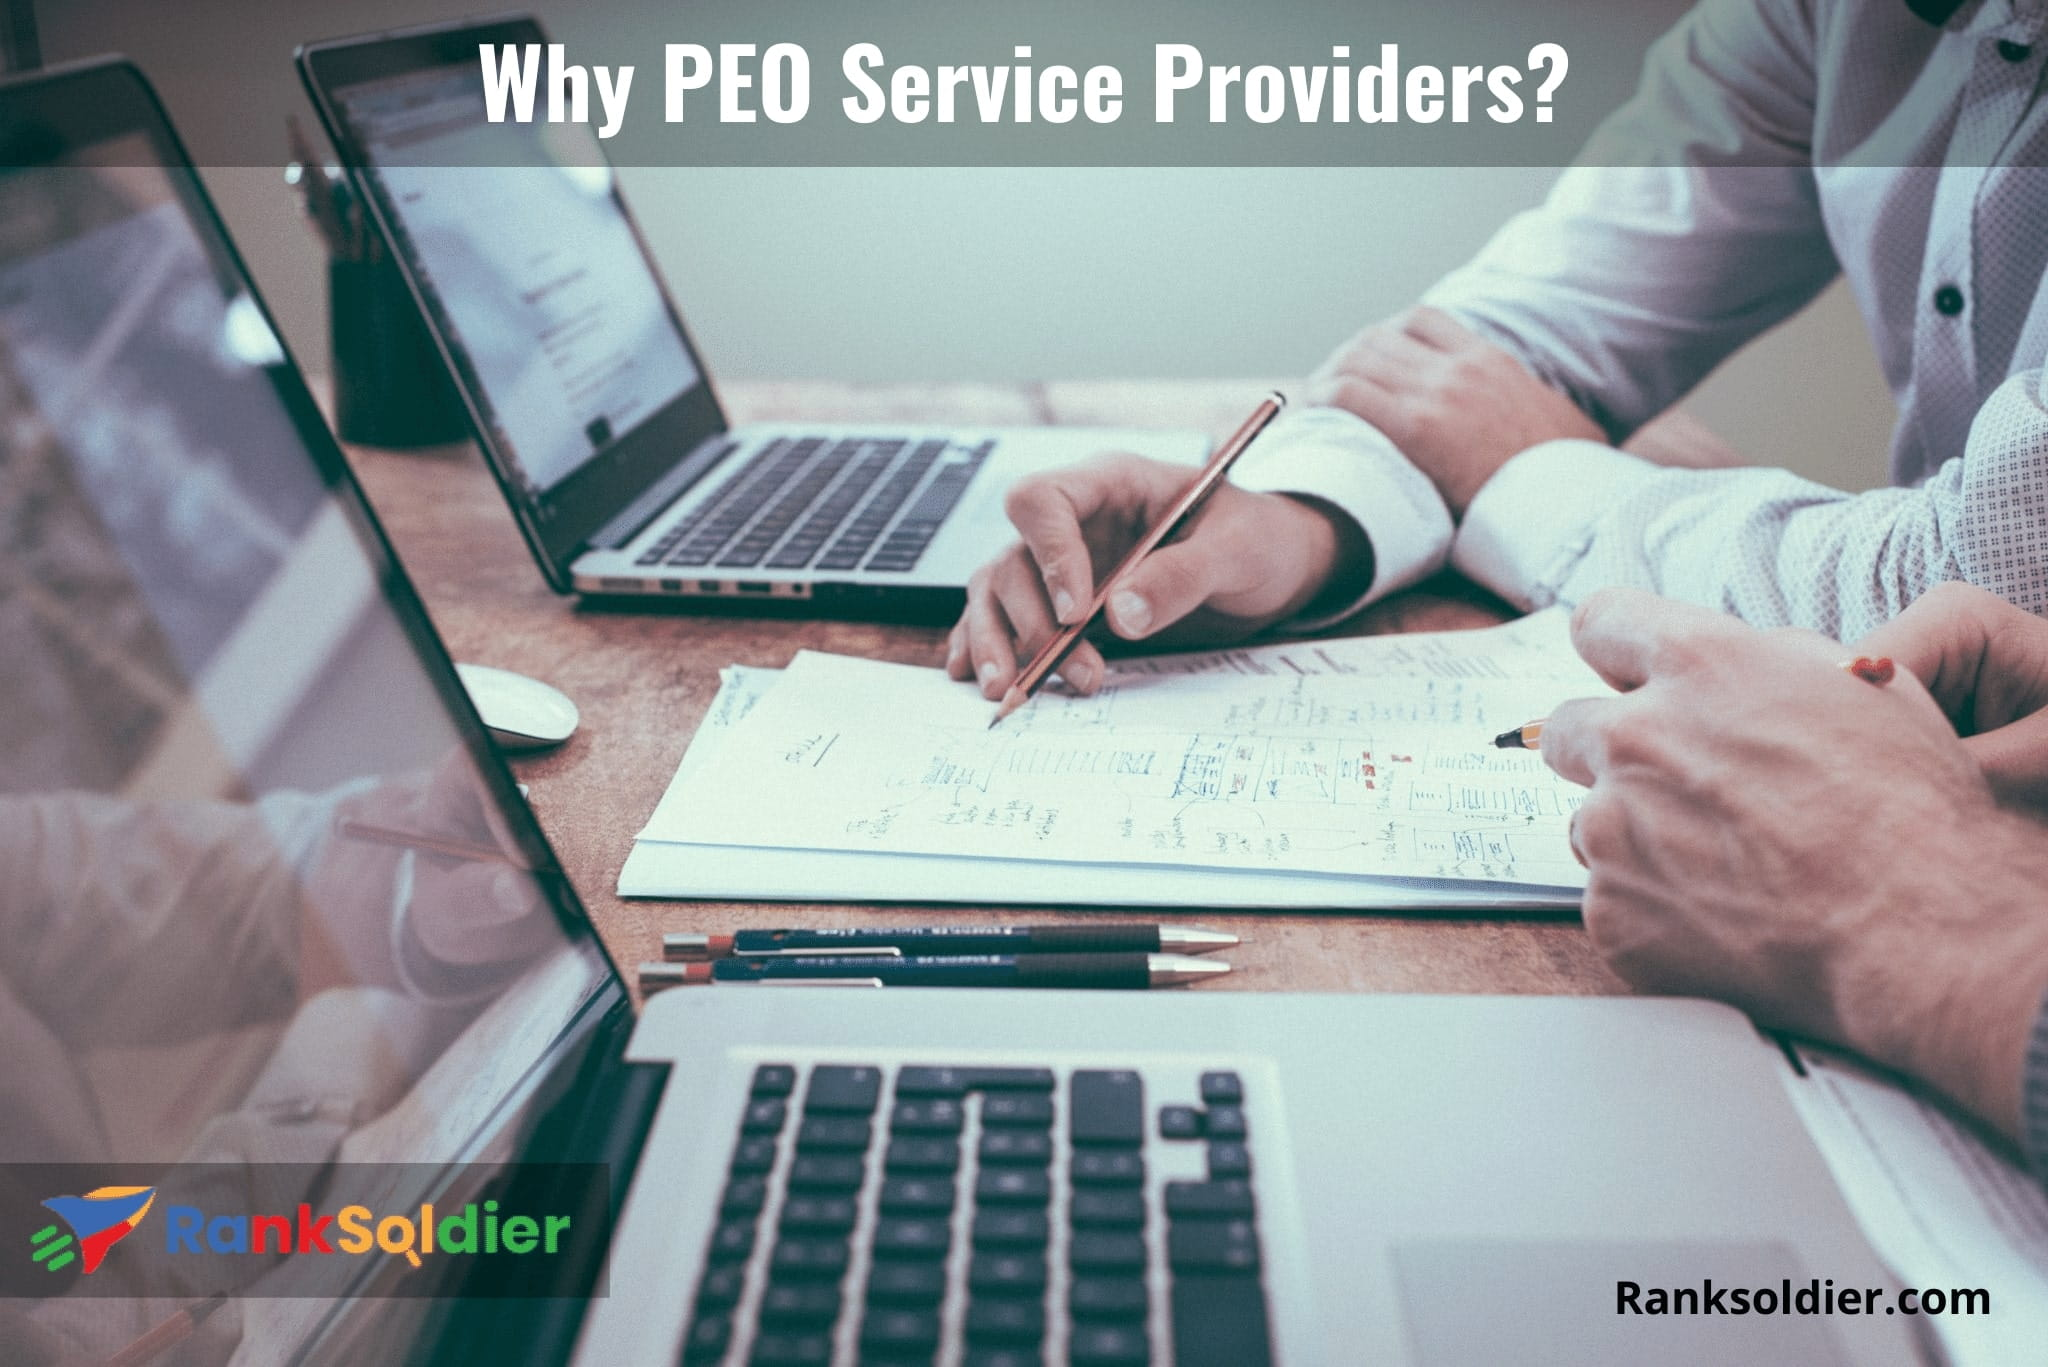 Why PEO Service Providers